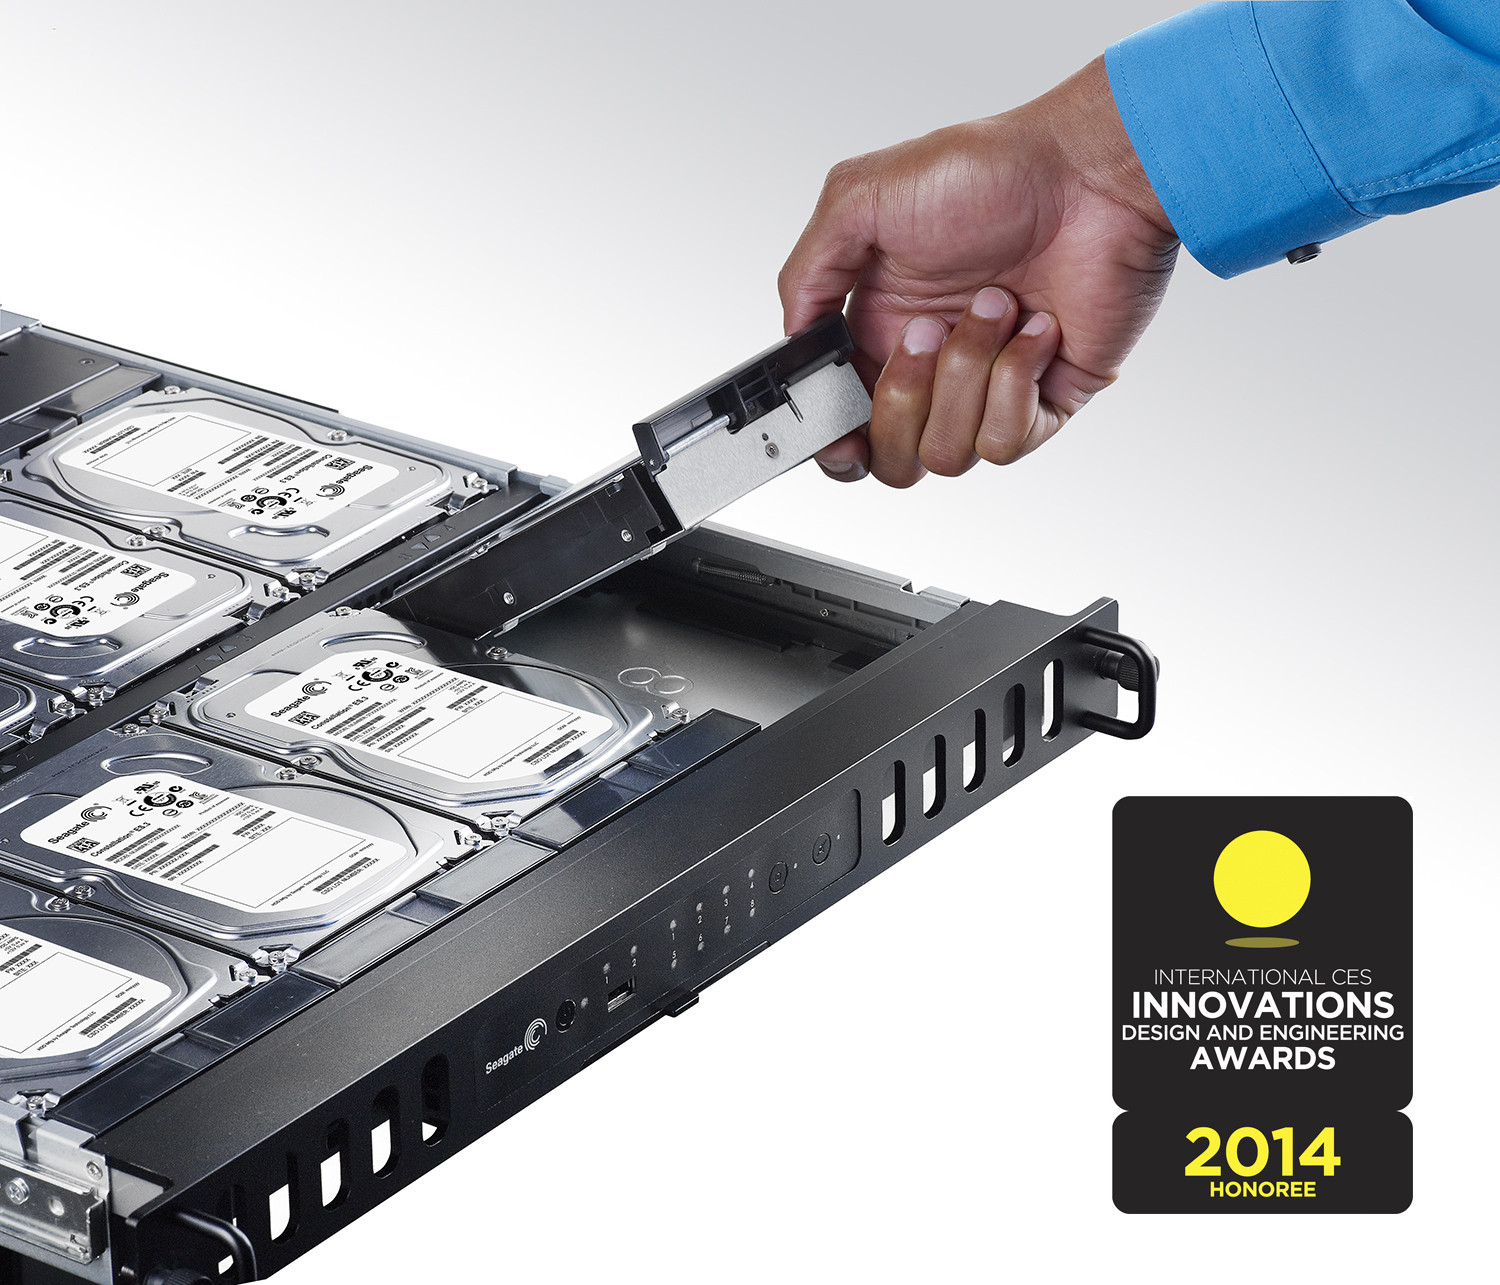 Seagate named as ces innovations 2014 design and for Product innovation company